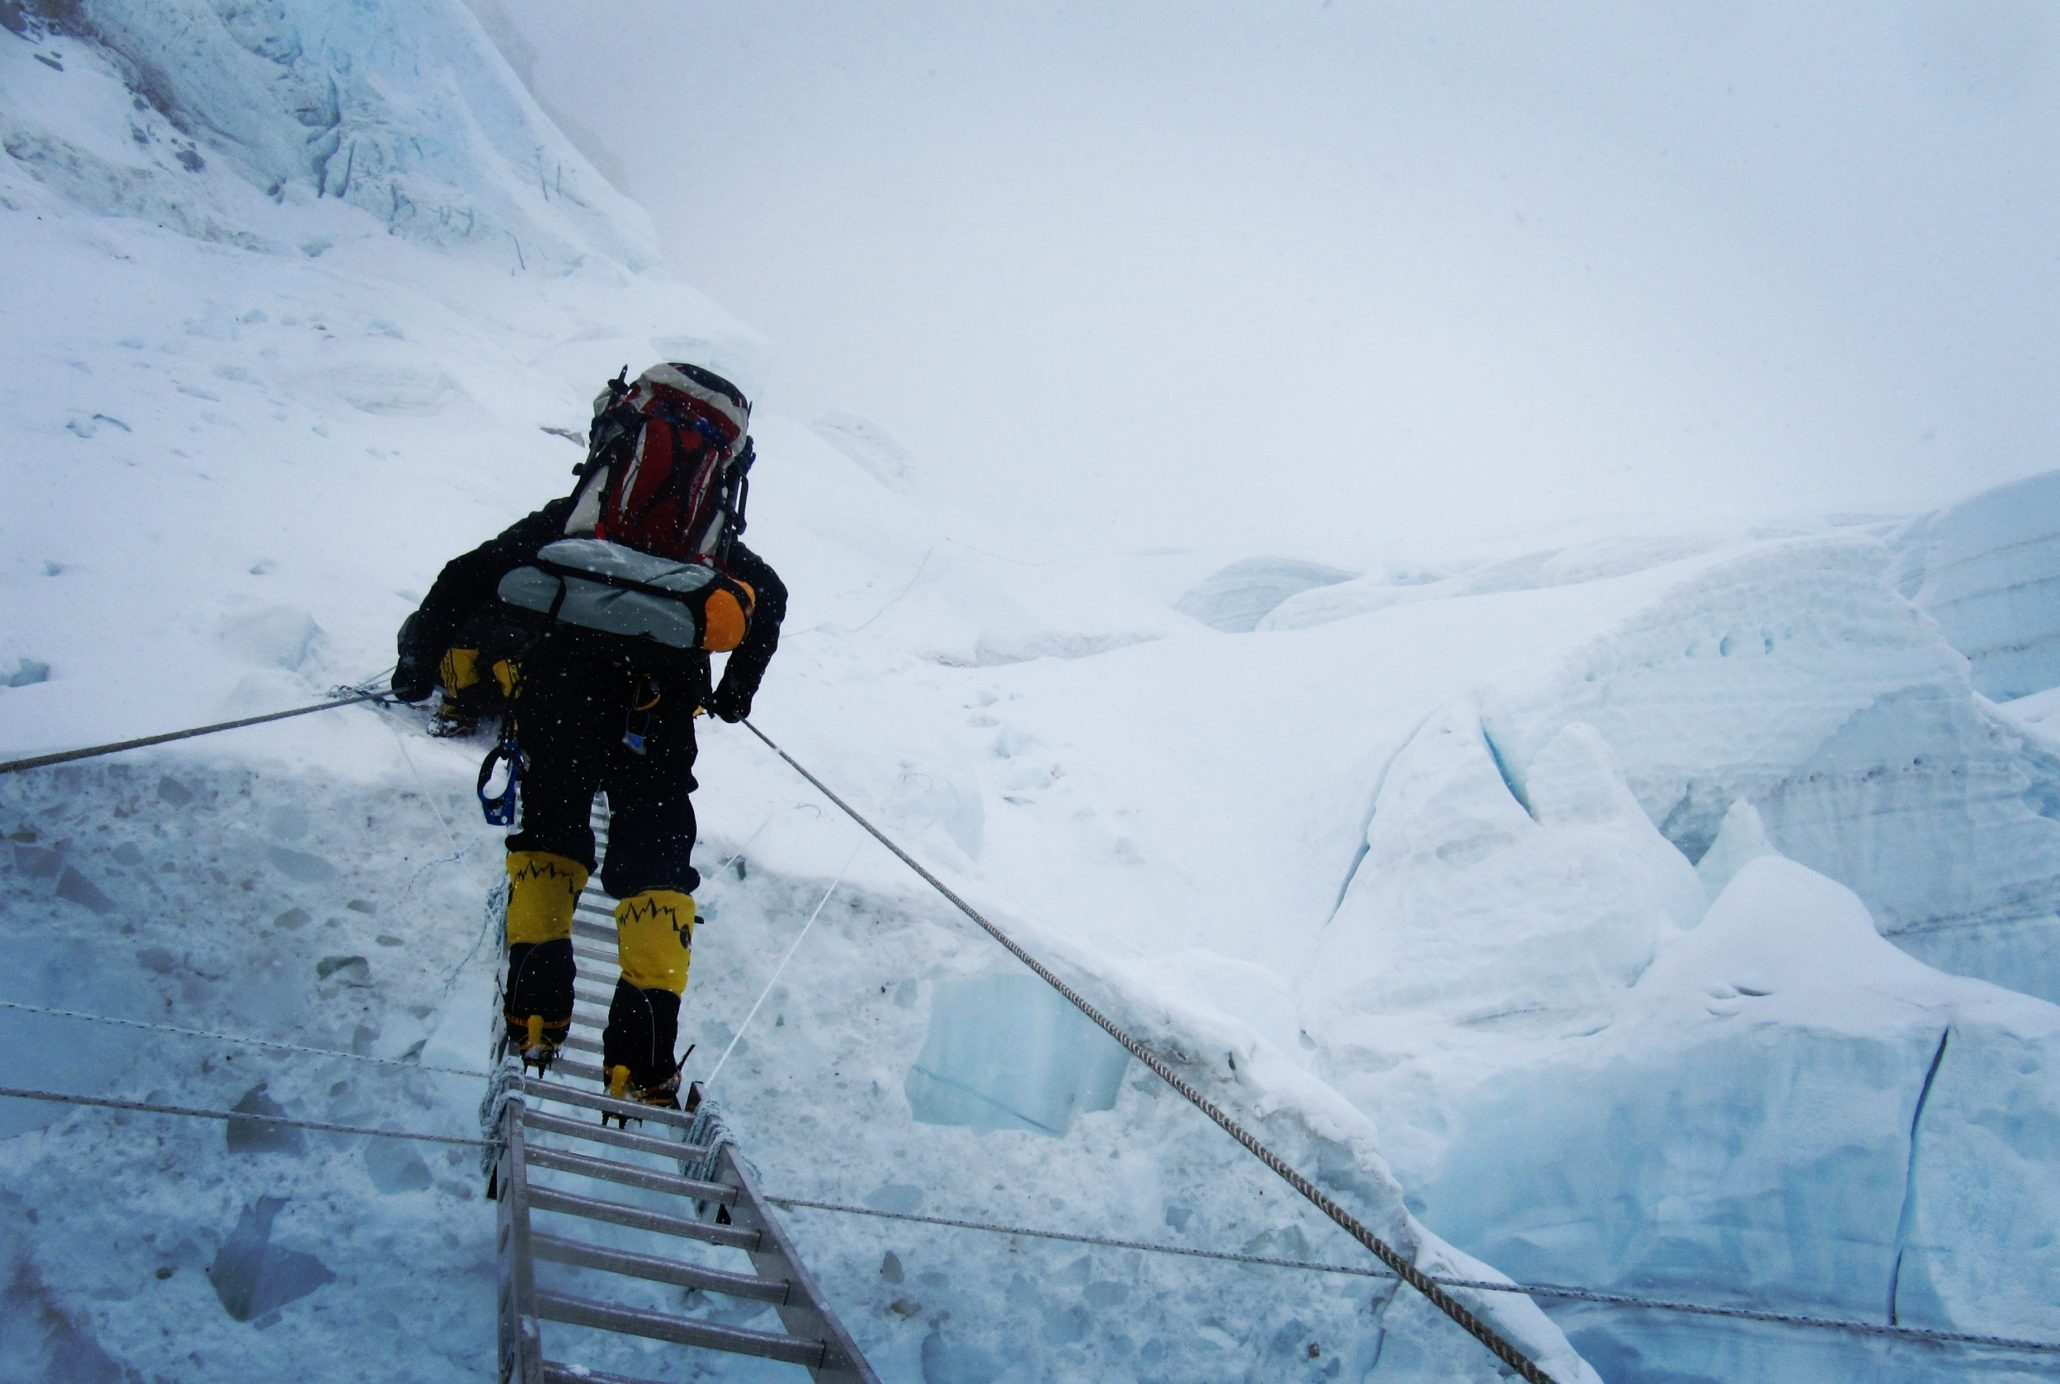 himalayan mountaineer climbing on the mountain covered with snow using a ladder